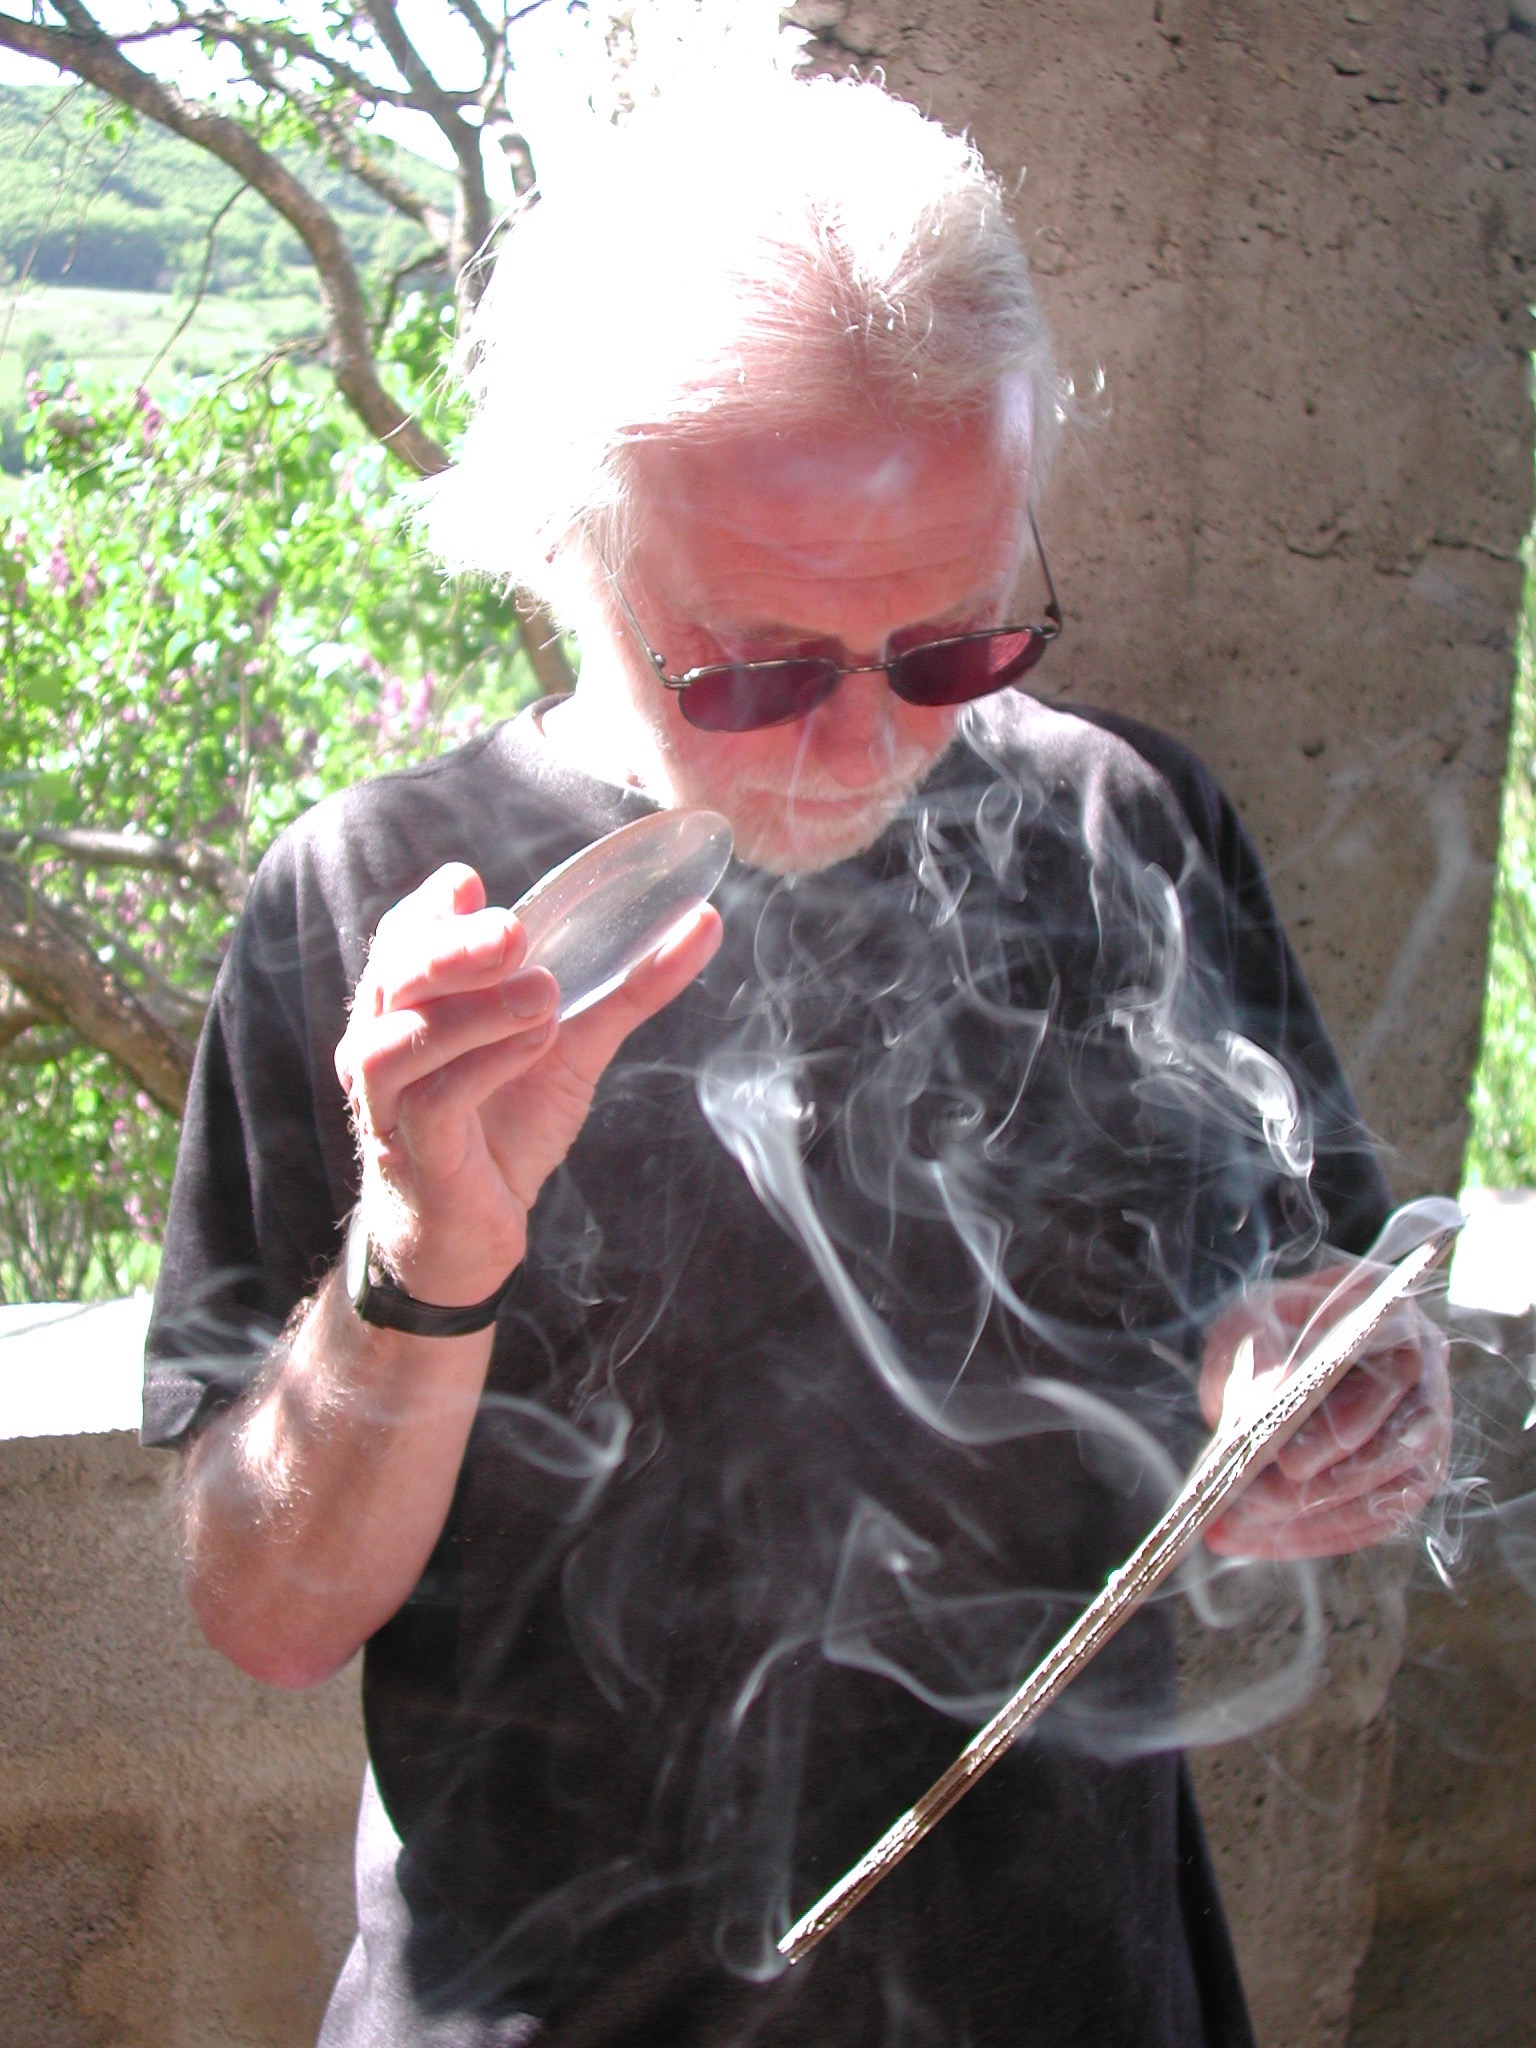 A rare picture of Roger making work by burning with a magnifying glass onto card. Taken in France by Isabella Oulton.